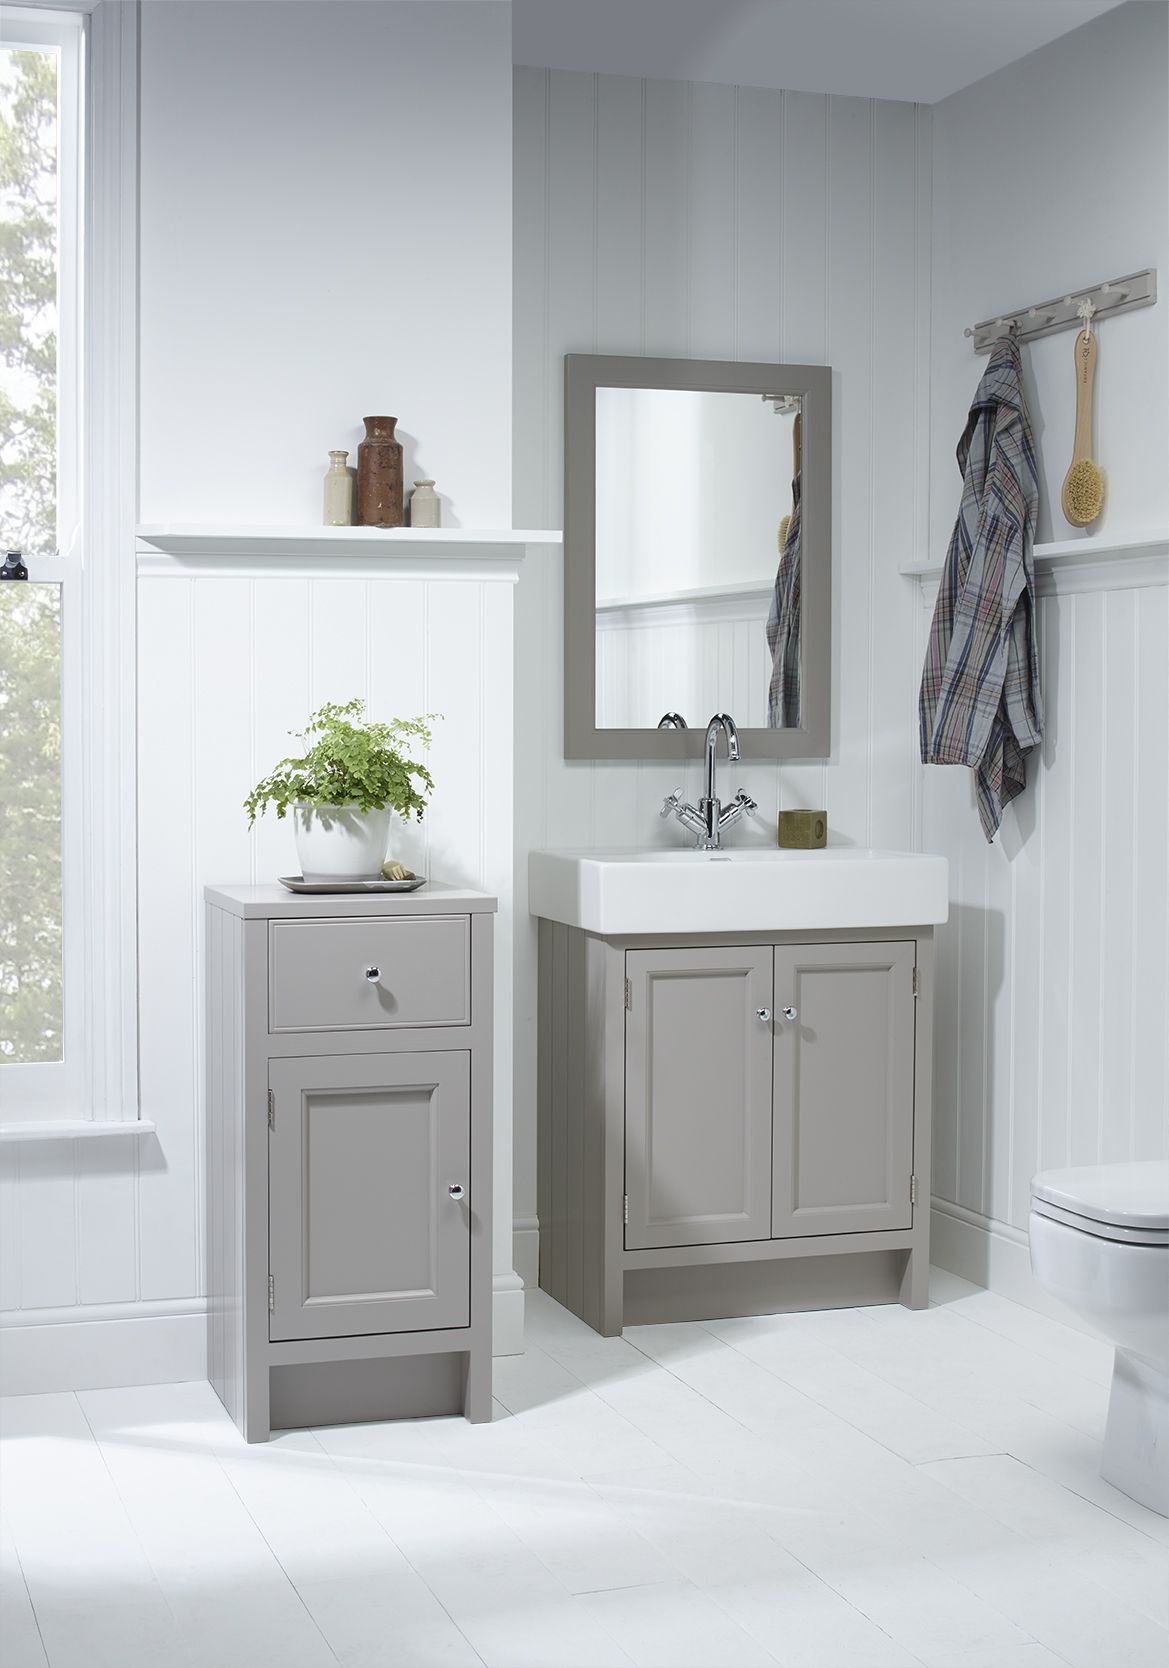 The 25 best roper rhodes ideas on pinterest fitted for Small fitted bathrooms